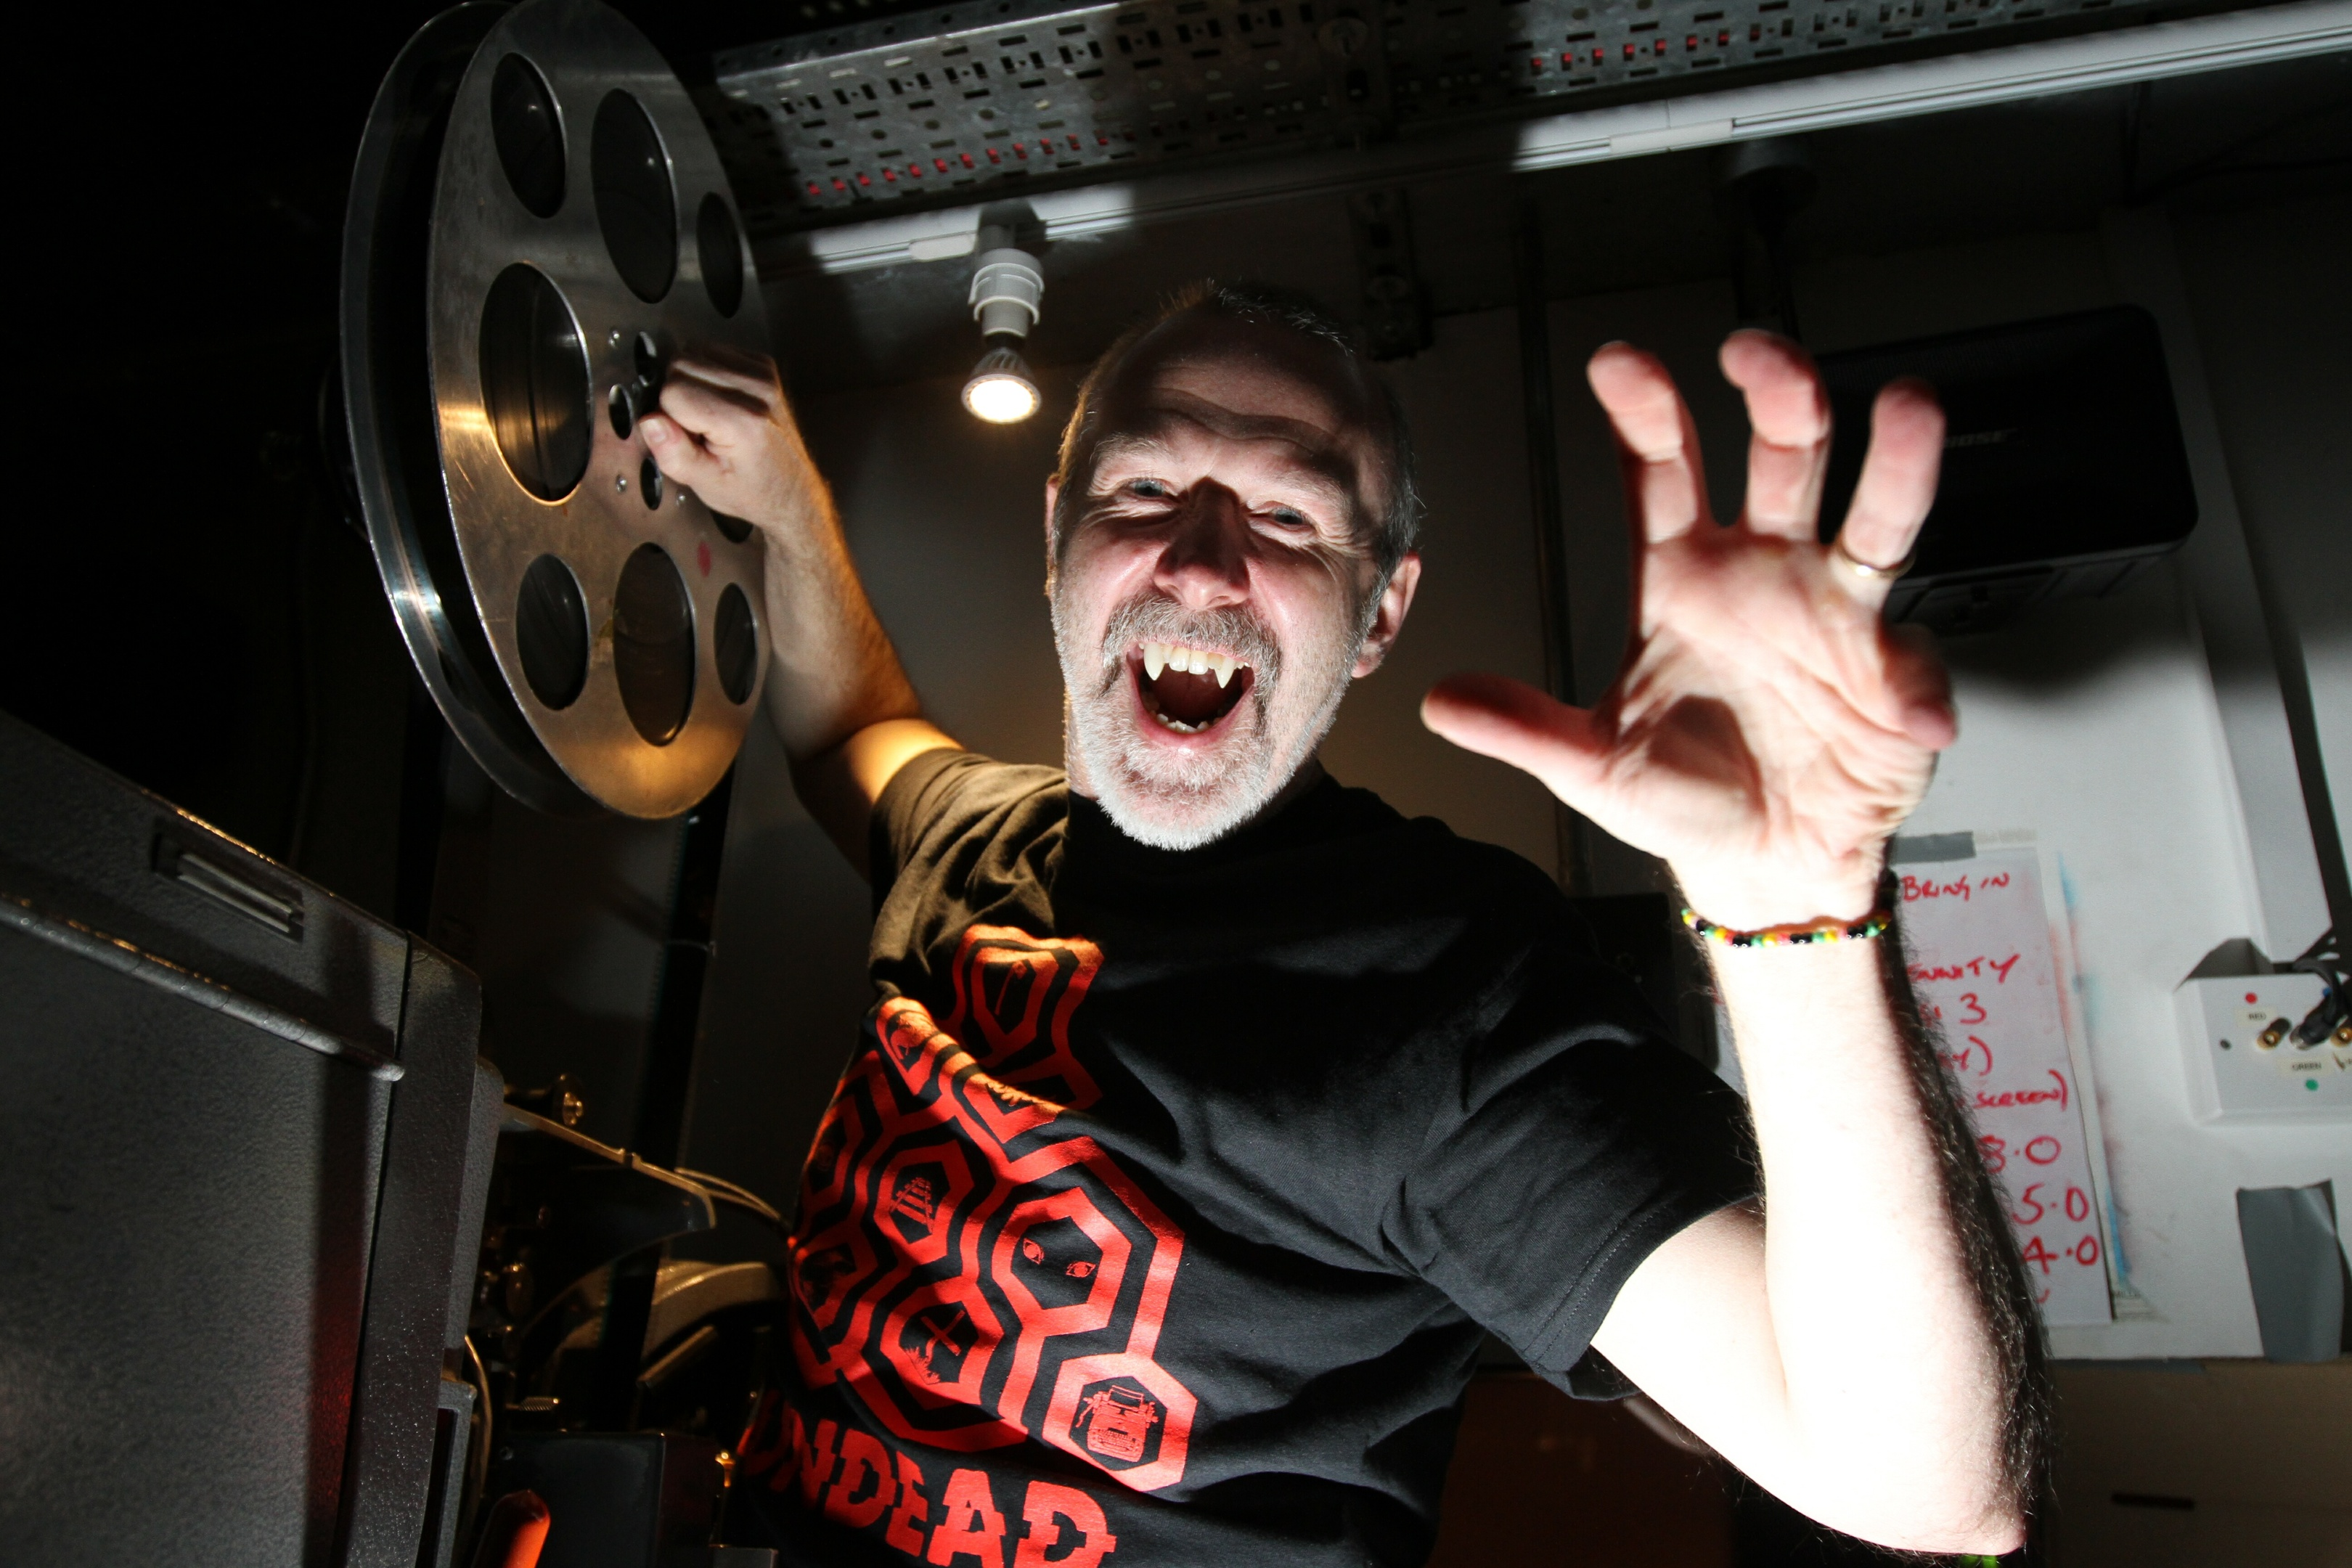 Head projectionist Ian Banks puts the first film reel on the projector